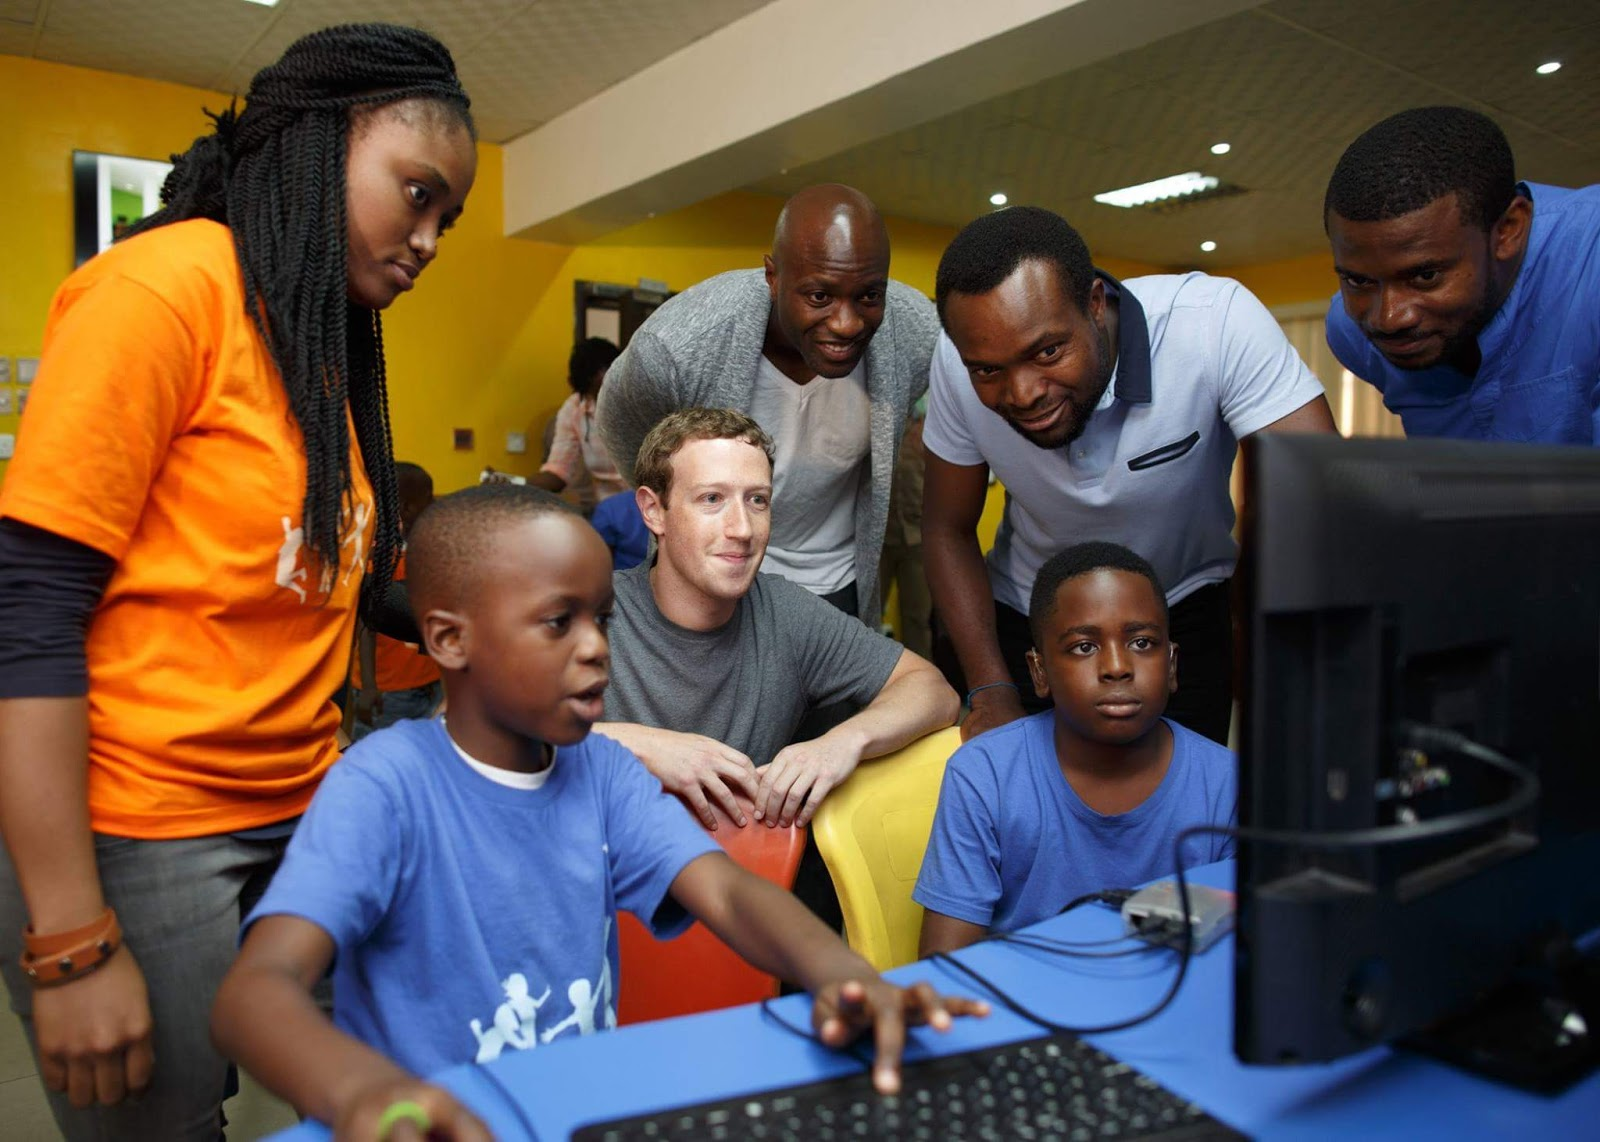 LONDON, United Kingdom, August 30, 2016/ -- Facebook (NASDAQ:FB) (http://www.Facebook.com) CEO Mark Zuckerberg is visiting Nigeria this week on his first trip to Africa, using his time in the country to visit the Yaba technology hub in Lagos, meet with developers and partners, and explore Nollywood.